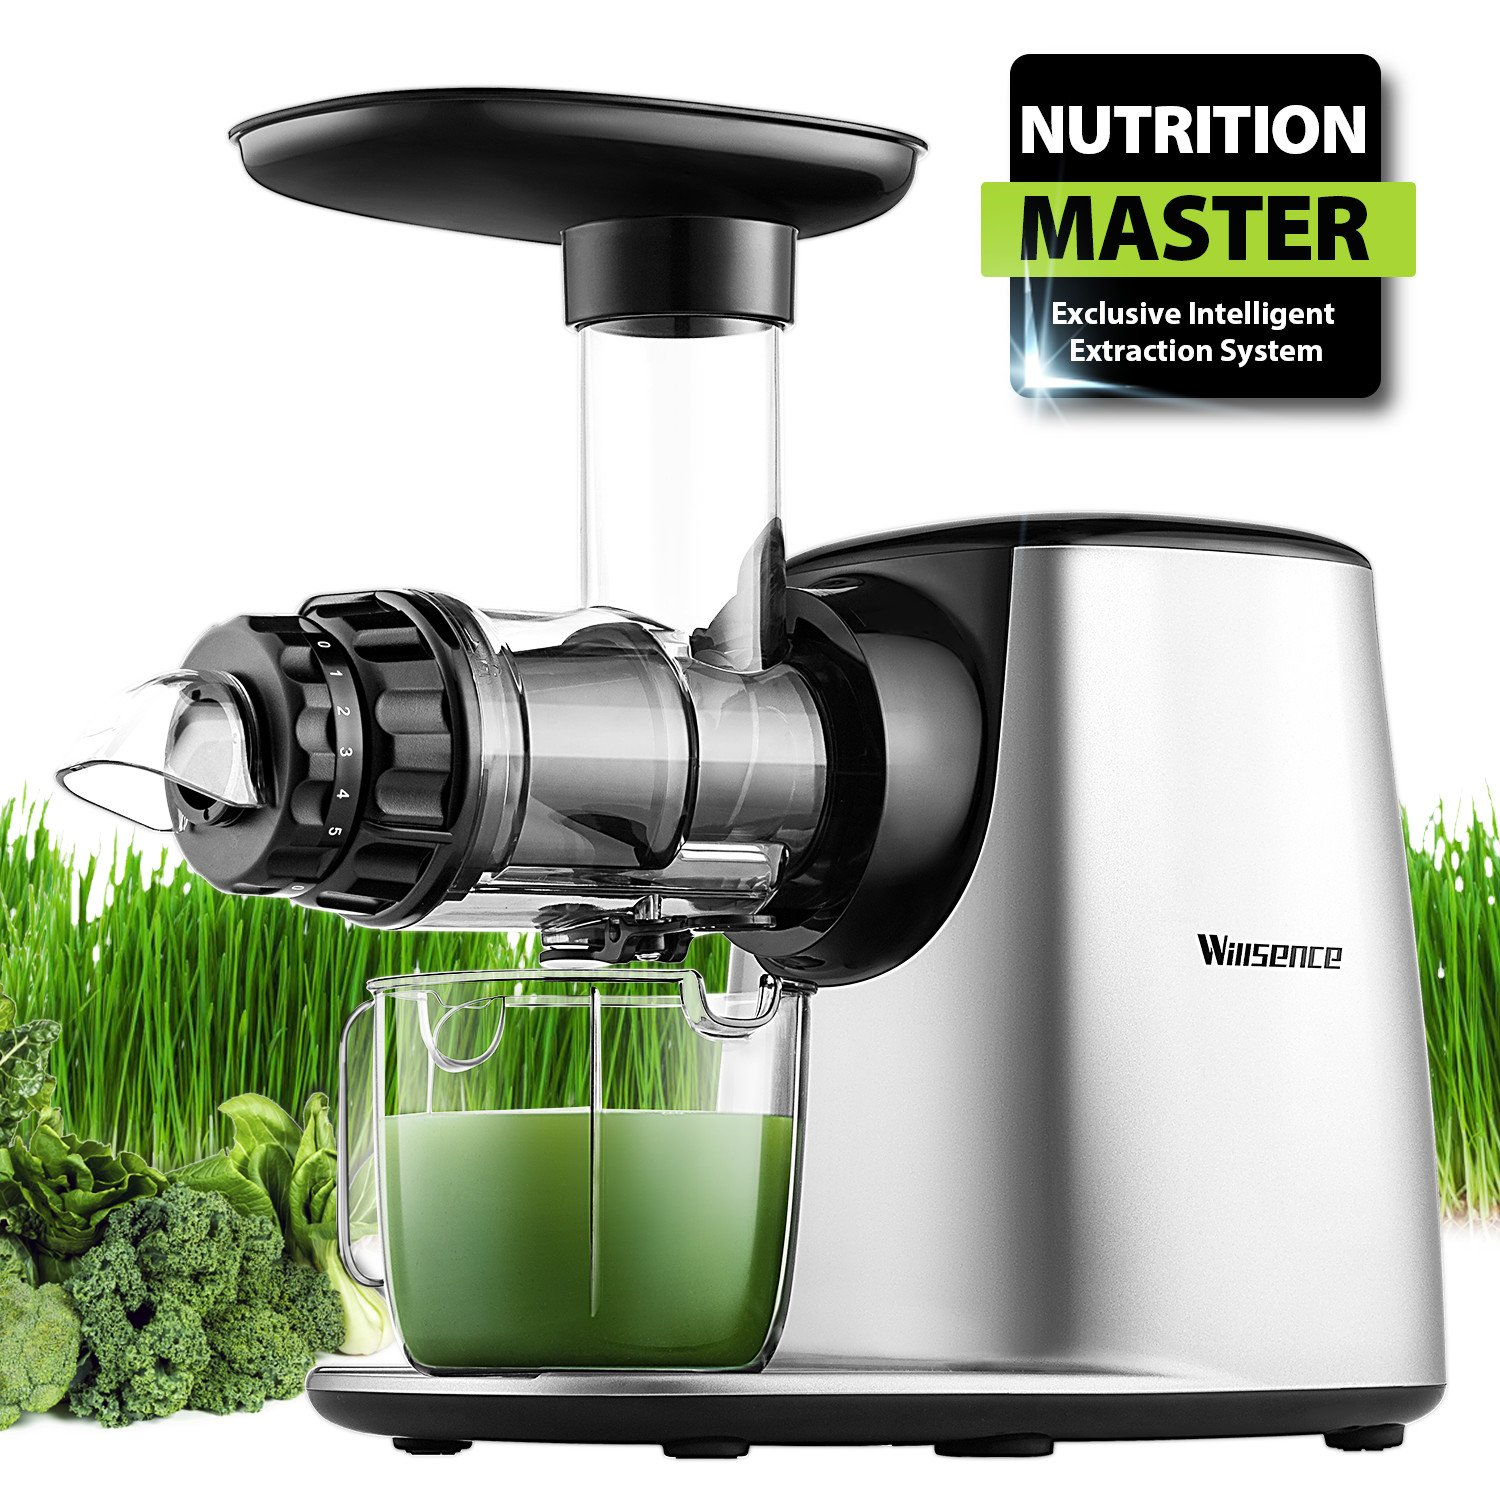 Willsence Juicers, Slow Masticating Juicer Extractor, Nutrition Master Cold Press Juicer Machine with Reverse Function,Fruits Vegetable Pulpfresh BPA Free (black)